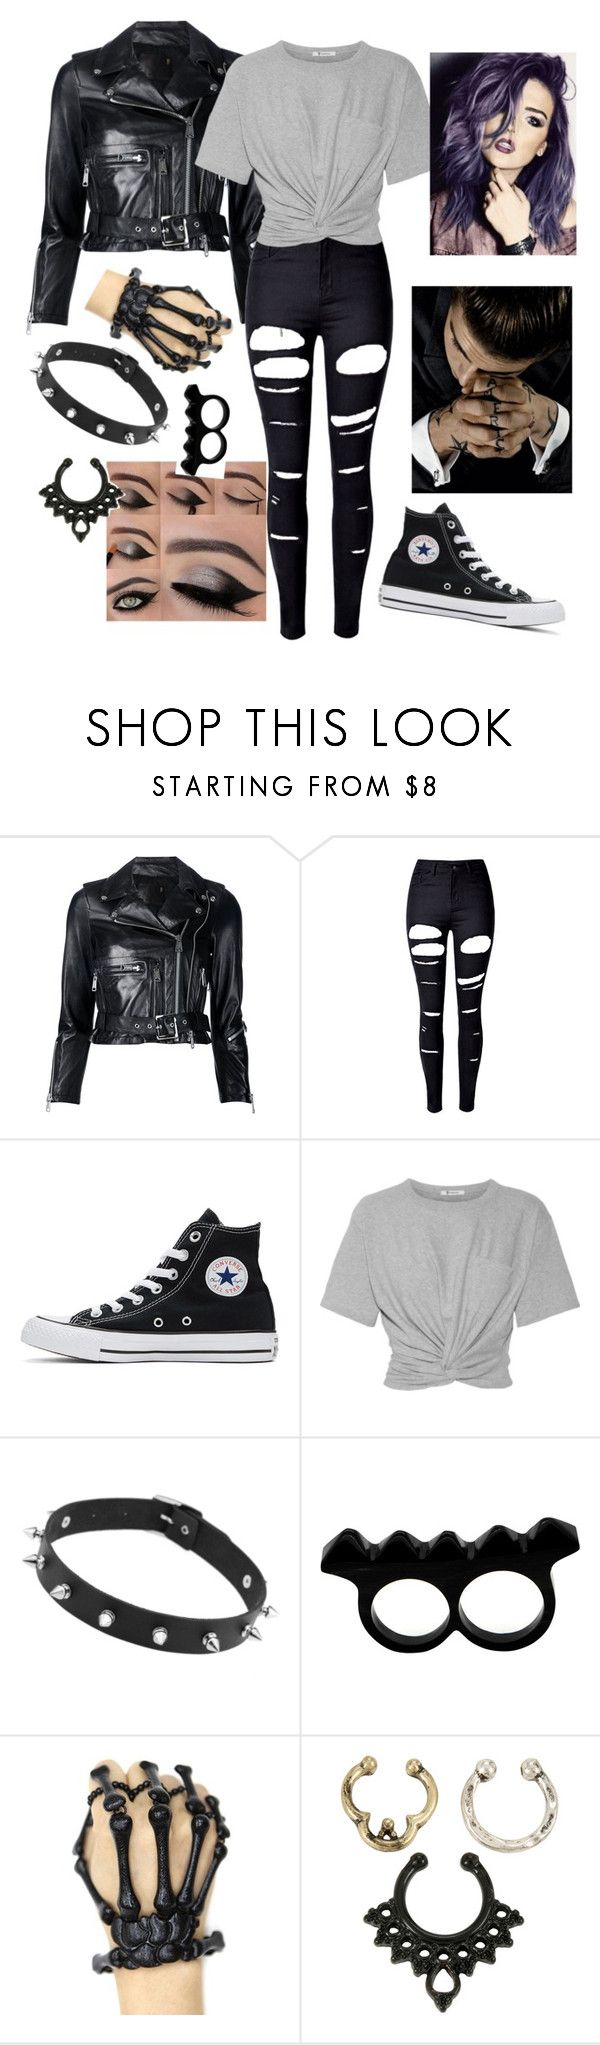 """""""♡Love the Bad Boys♡"""" by emo-roxanne ❤ liked on Polyvore featuring R13, WithChic, Converse, T By Alexander Wang, L'Artisan Créateur, Hot Topic and mmm"""